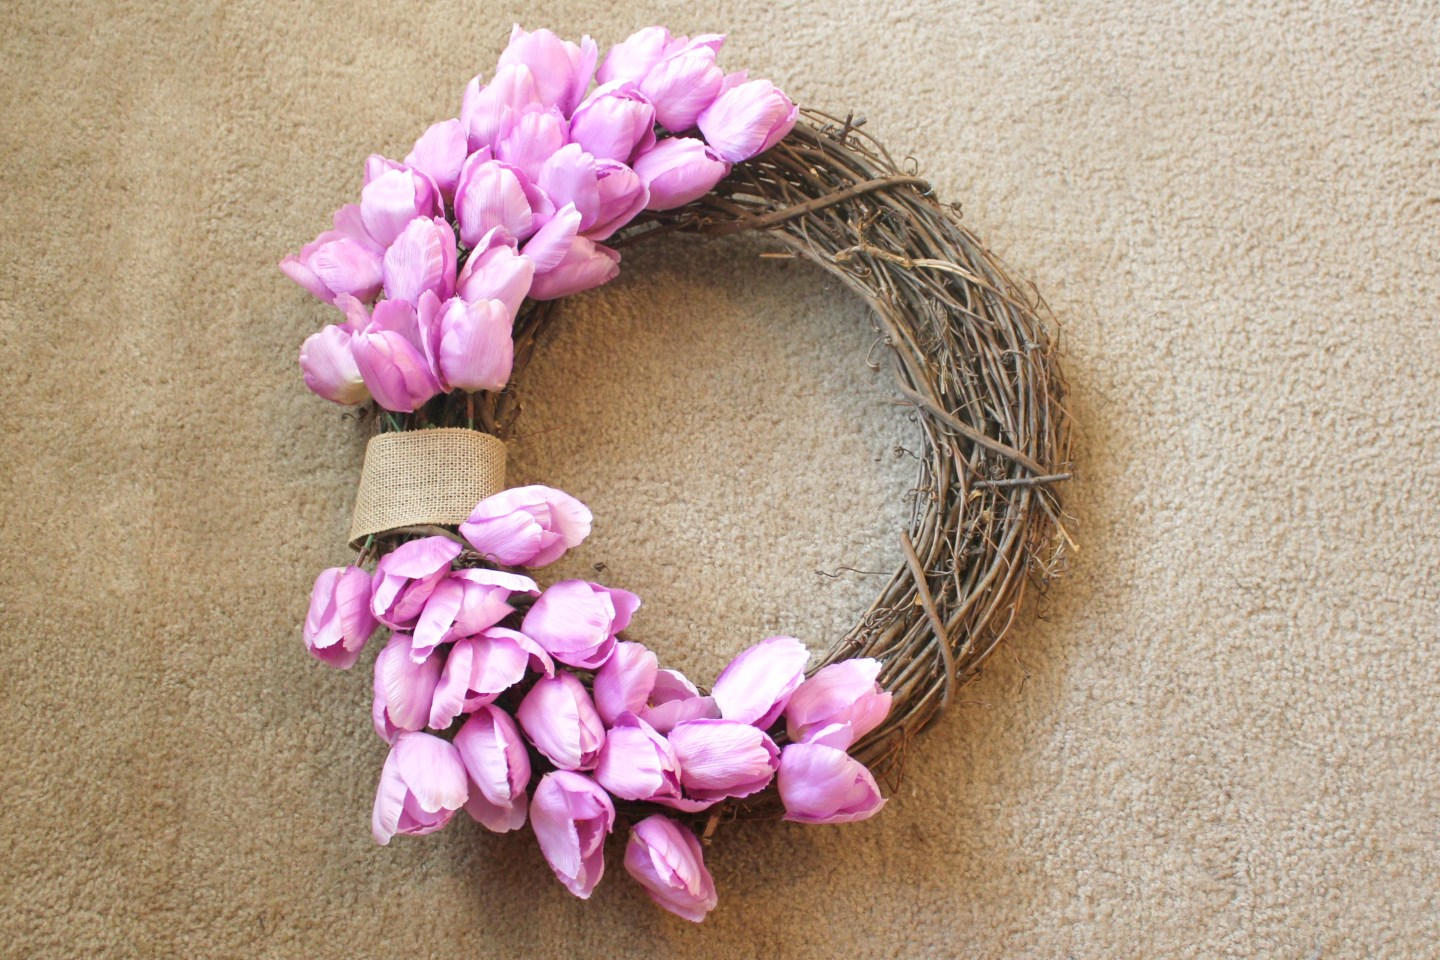 how to make a spring wreath - place tulip stems along the top half of the wreath